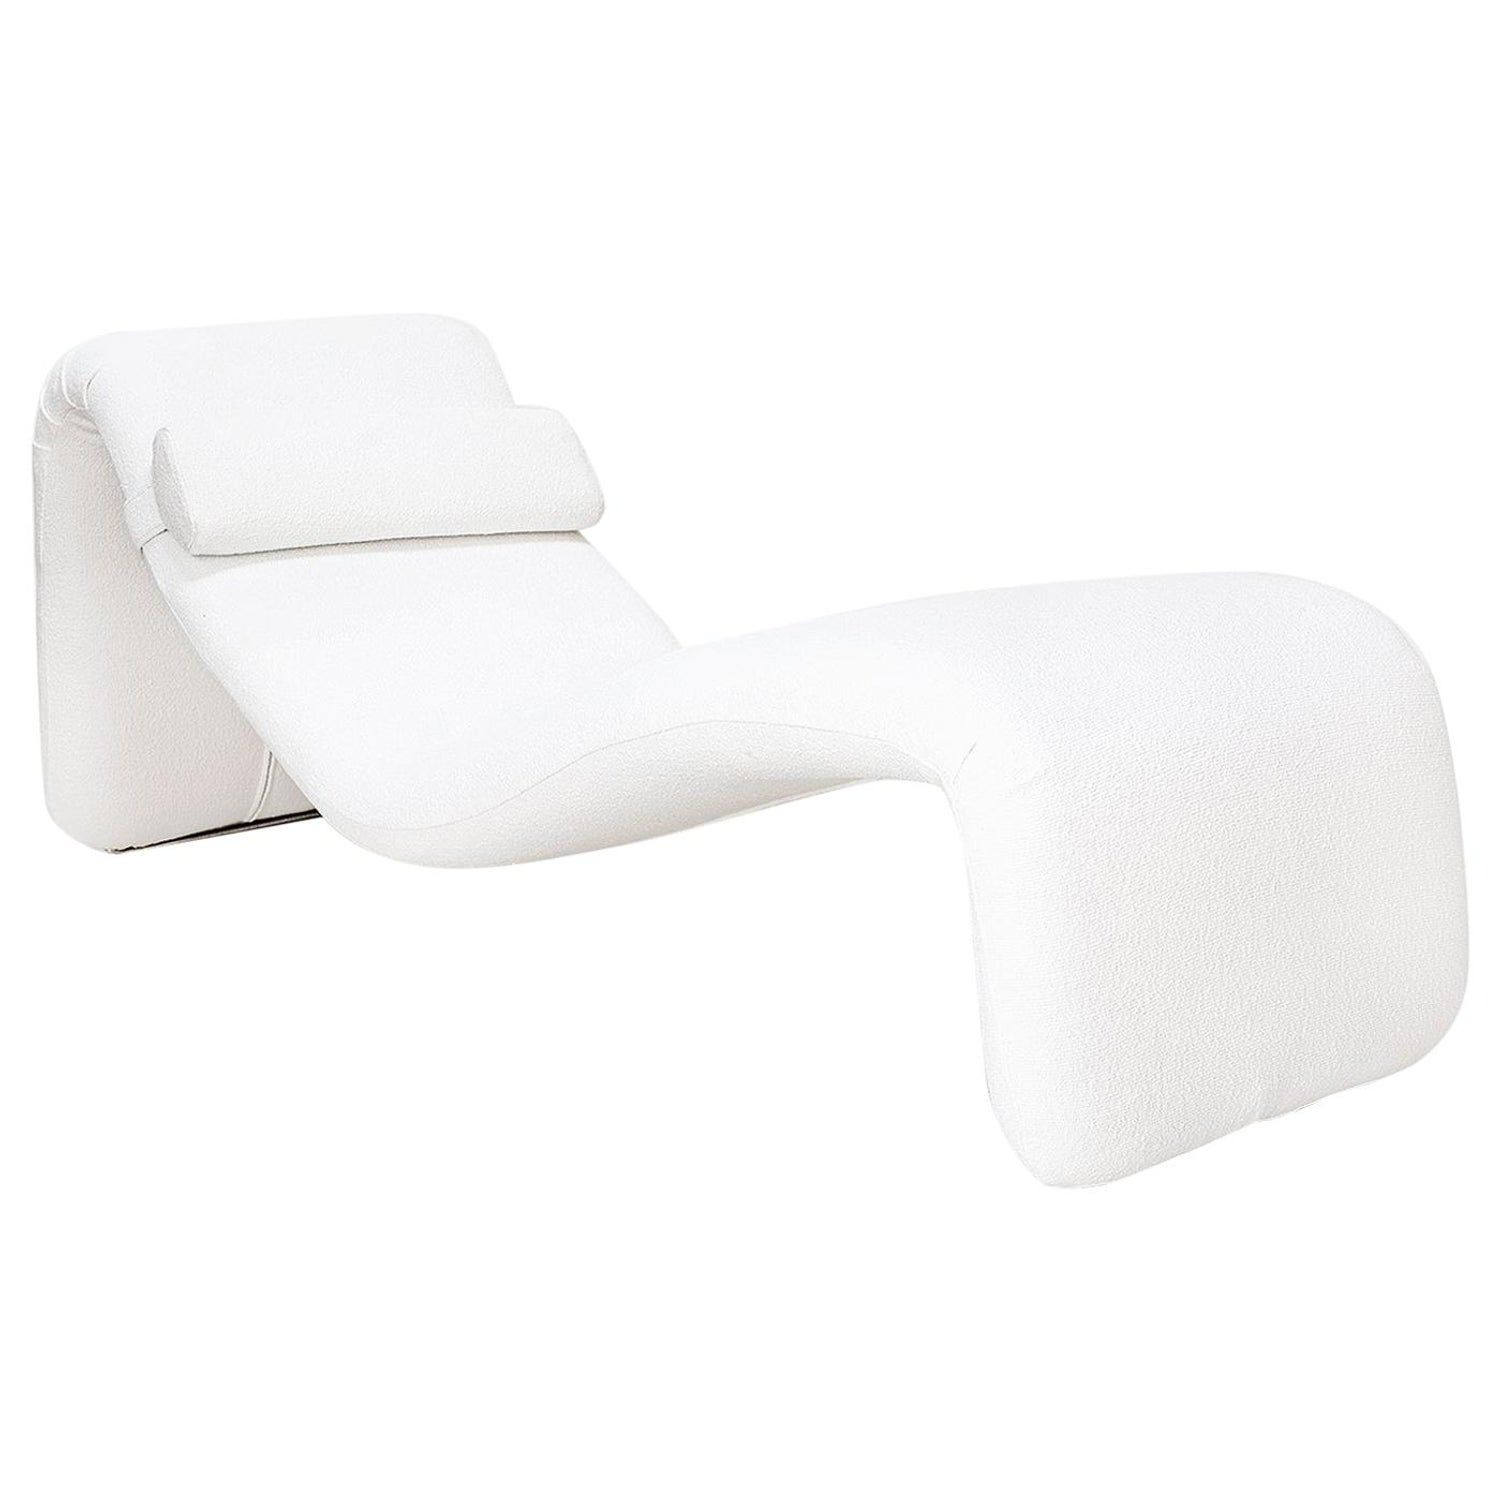 Olivier Mourgue Chaise Lounge Djinn France 1960s Study Interior Design Chaise Lounge Modern Chair Fabric